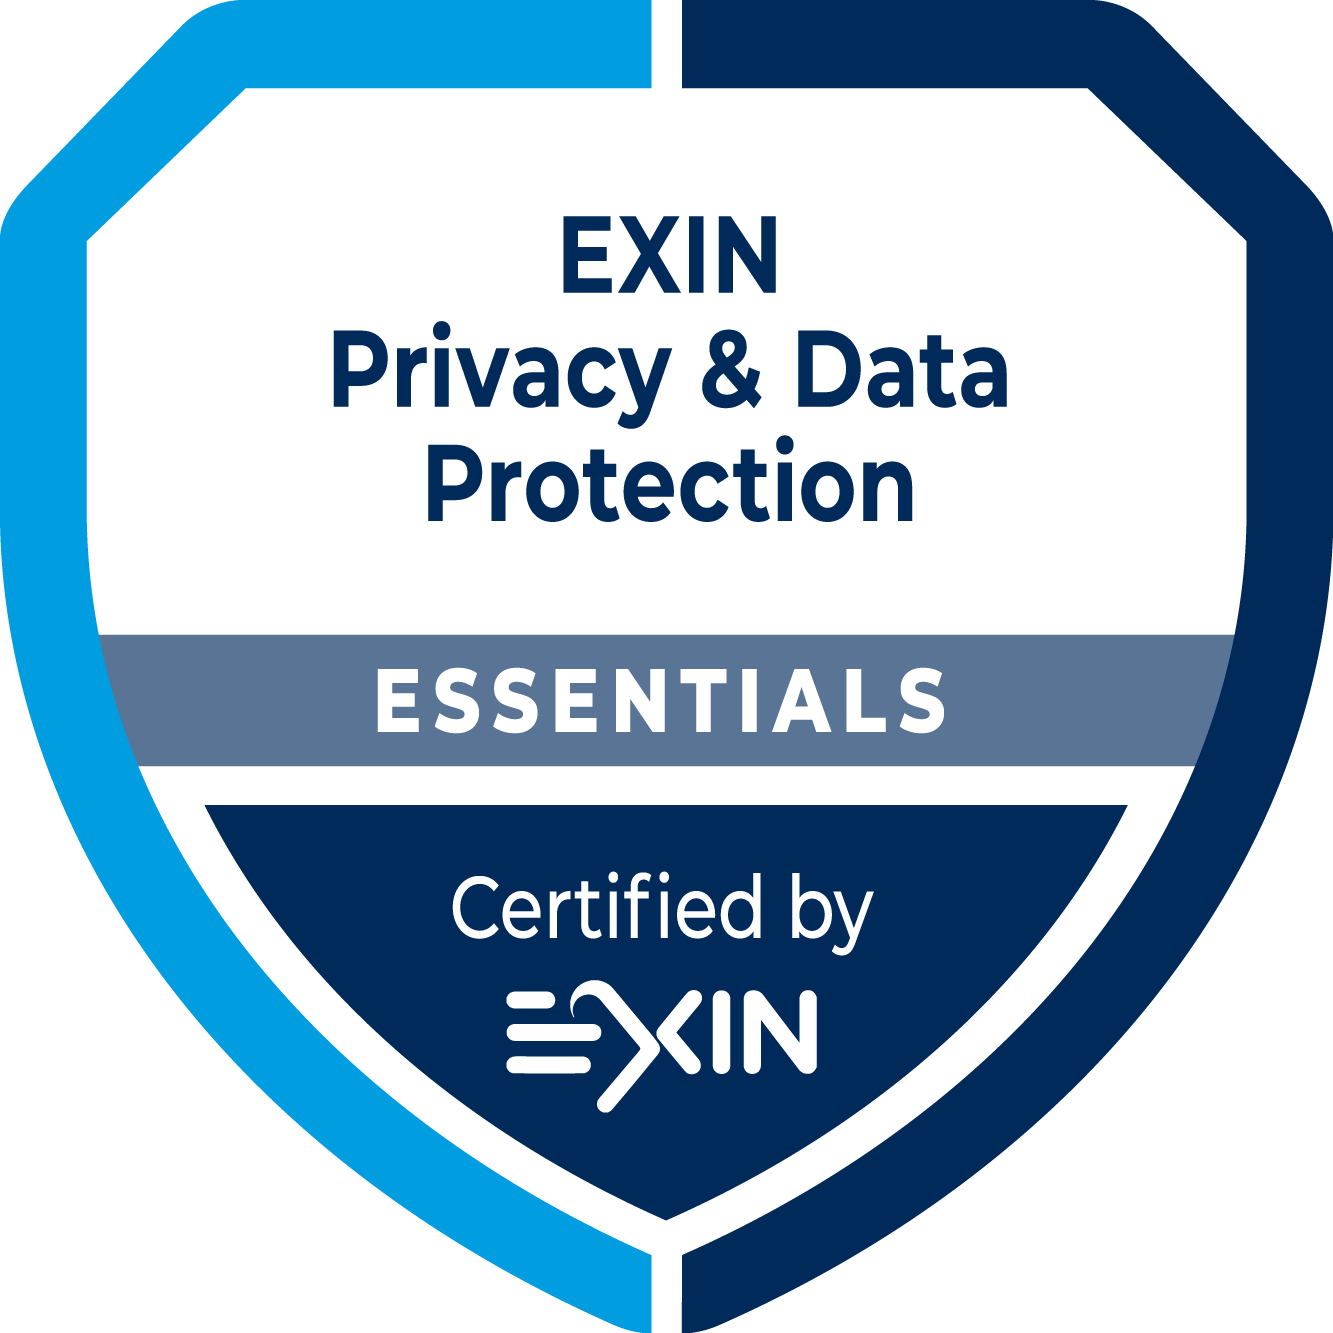 EXIN Privacy and Data Protection Essentials